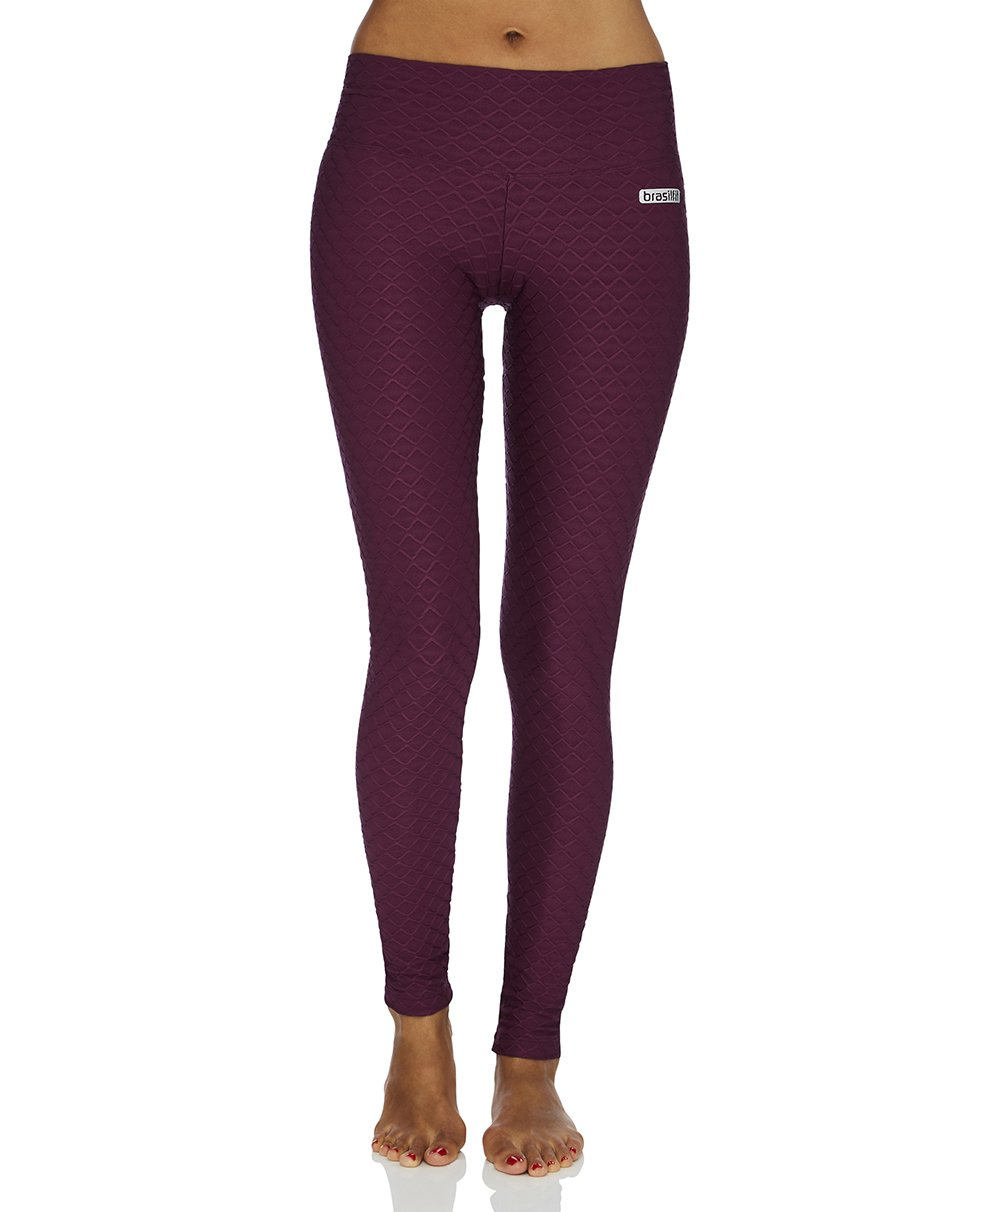 Wallpaper Full Length Legging - Plum